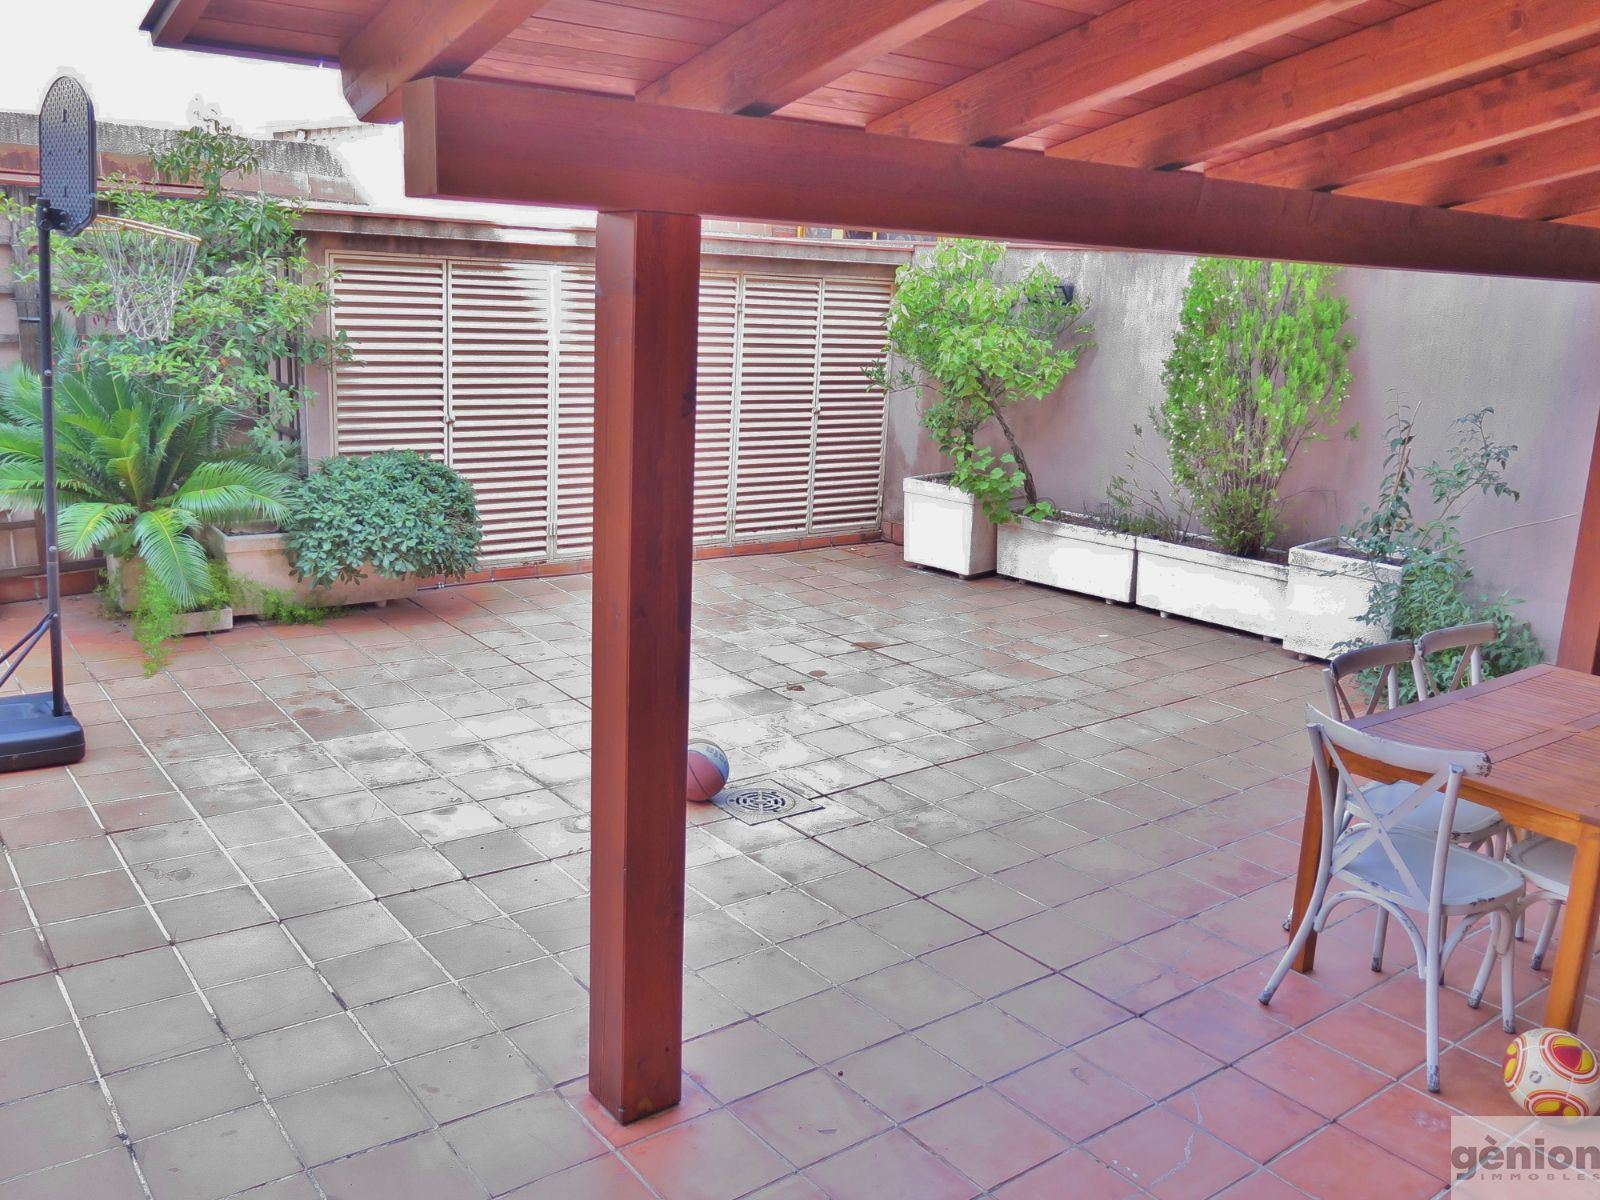 5-BEDROOM APARTMENT WITH LARGE TERRACE IN GIRONA, NEXT TO MIGDIA PARK